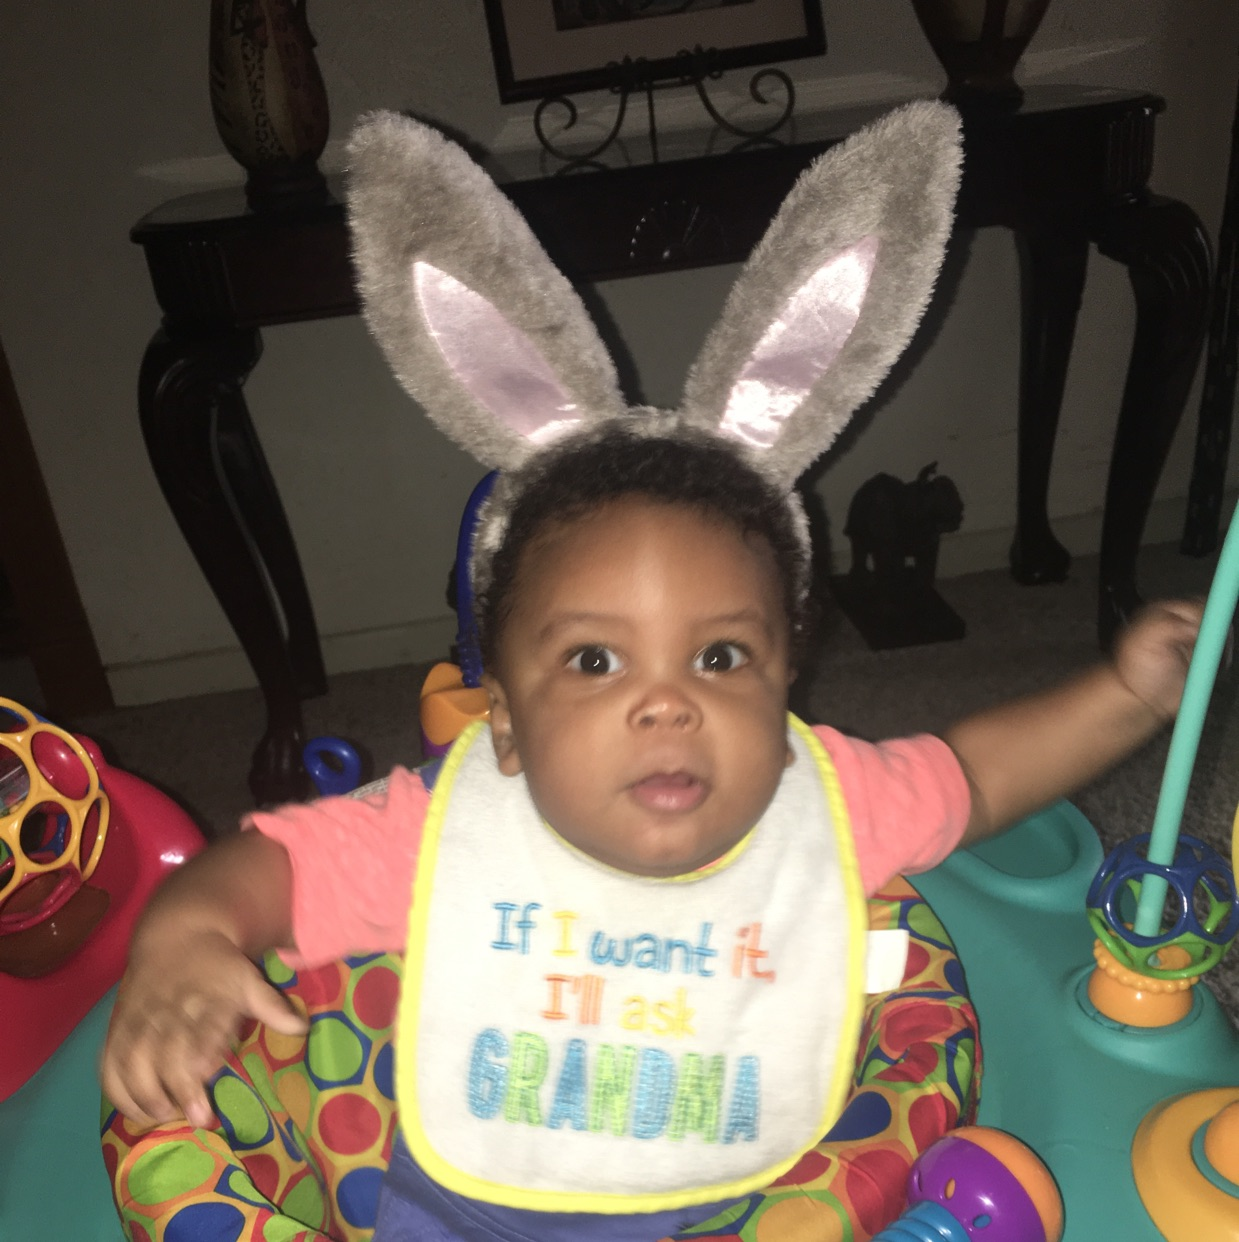 My little bunny Austin Glow munity